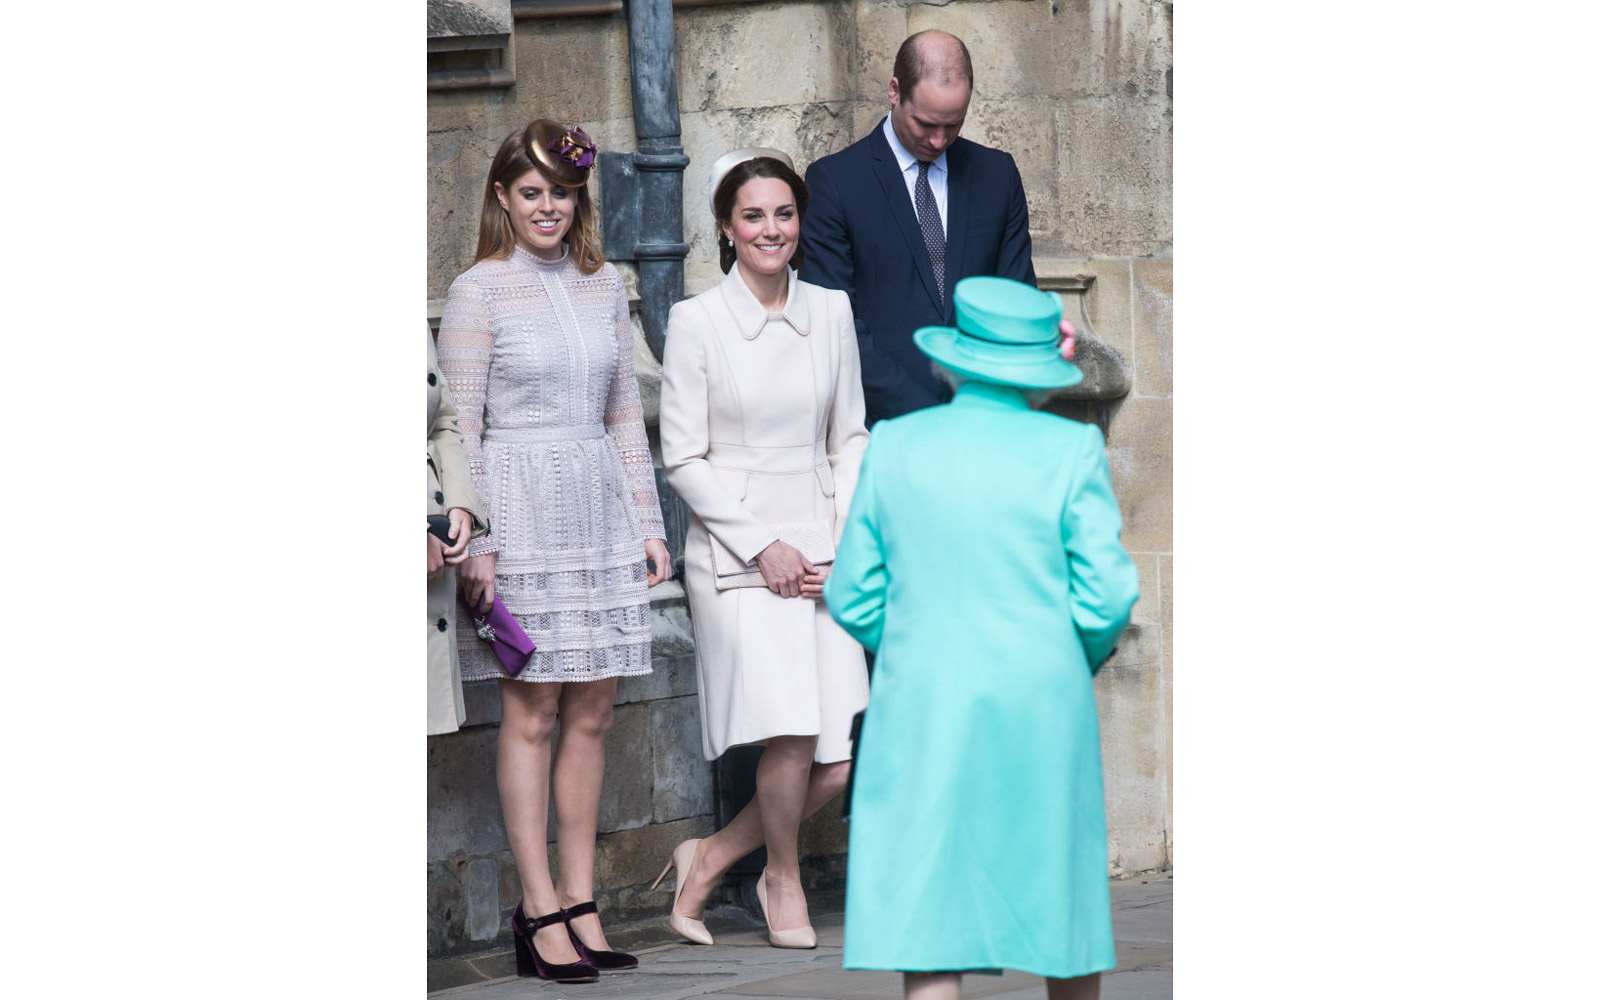 WINDSOR, ENGLAND - APRIL 16:  Catherine, Duchess of Cambridge performs a curtsy to Queen Elizabeth II as she attends Easter Day Service with Prince William, Duke of Cambridge and Princess Beatrice of York at St George's Chapel on April 16, 2017 in Windsor